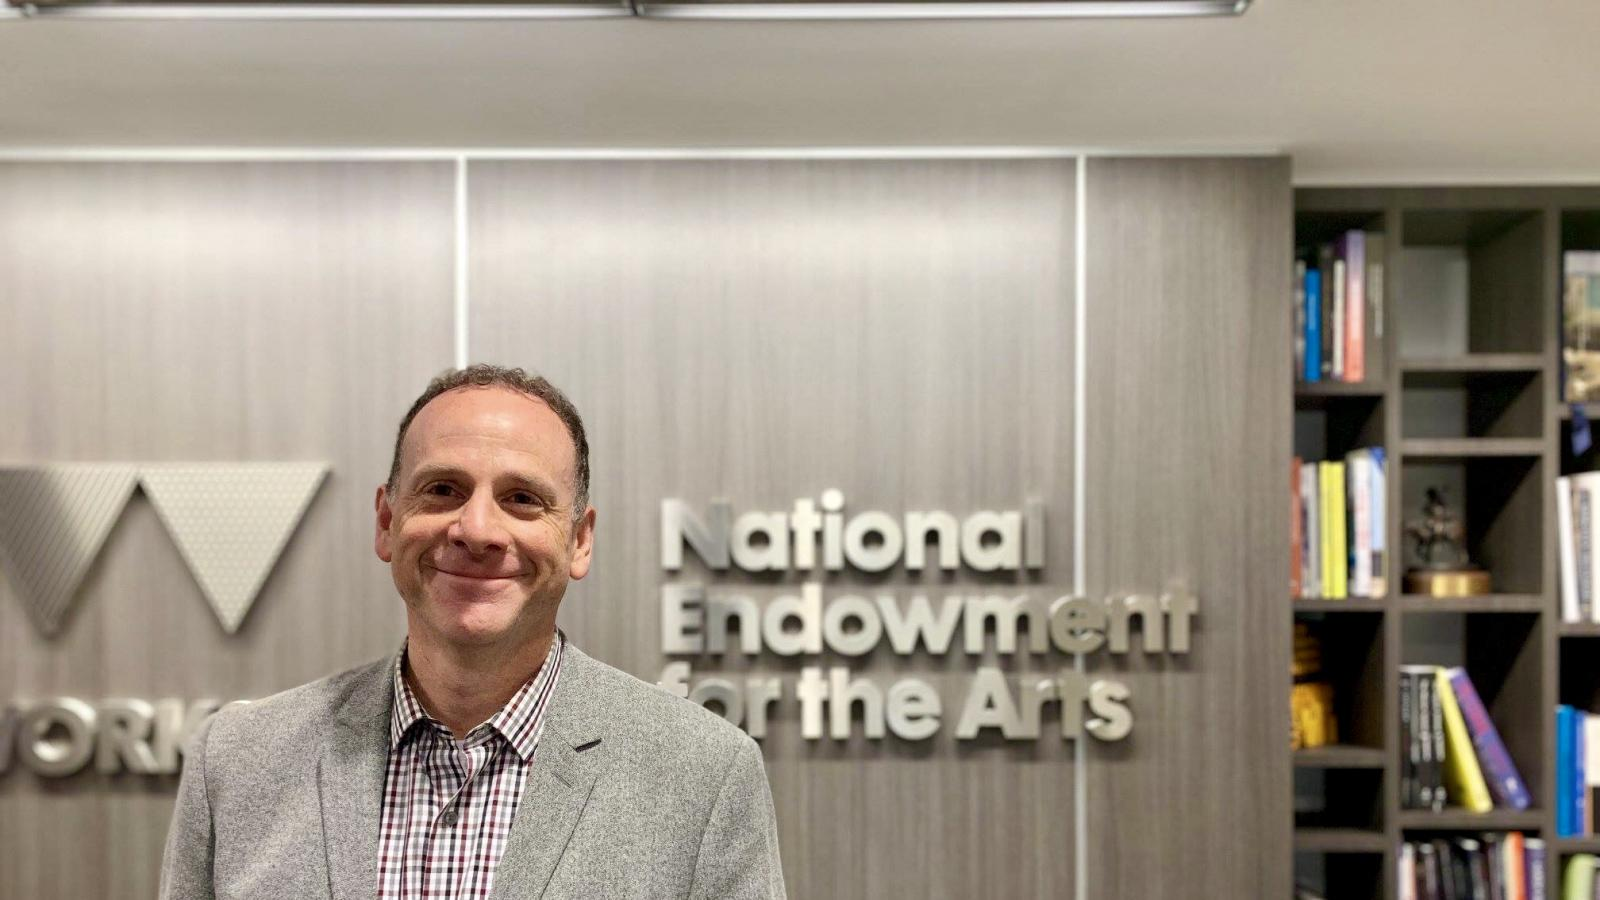 man smiling in front of National Endowment for the Arts sign